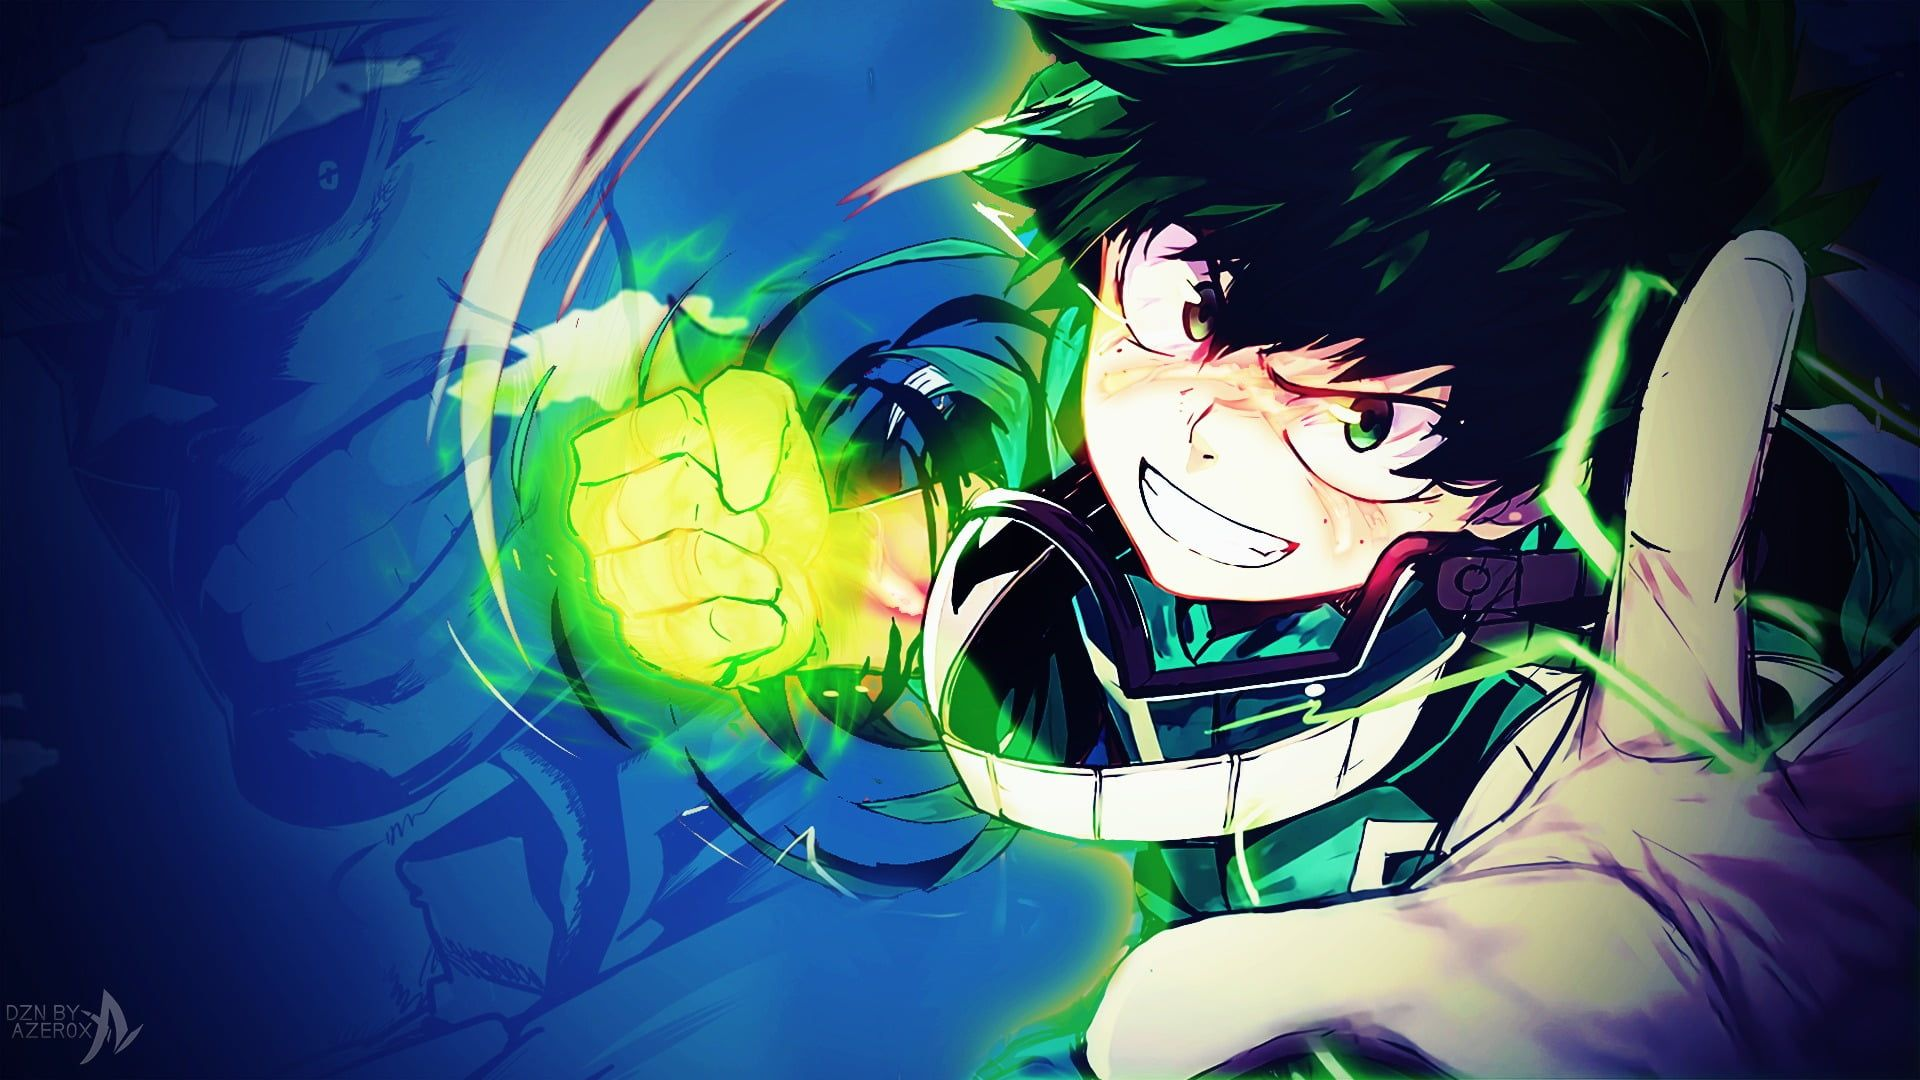 Deku Illustration Anime Boku No Hero Academia 1080p Wallpaper Hdwallpaper Desktop In 2020 Anime Wallpaper Background Images Wallpapers Wallpaper Backgrounds